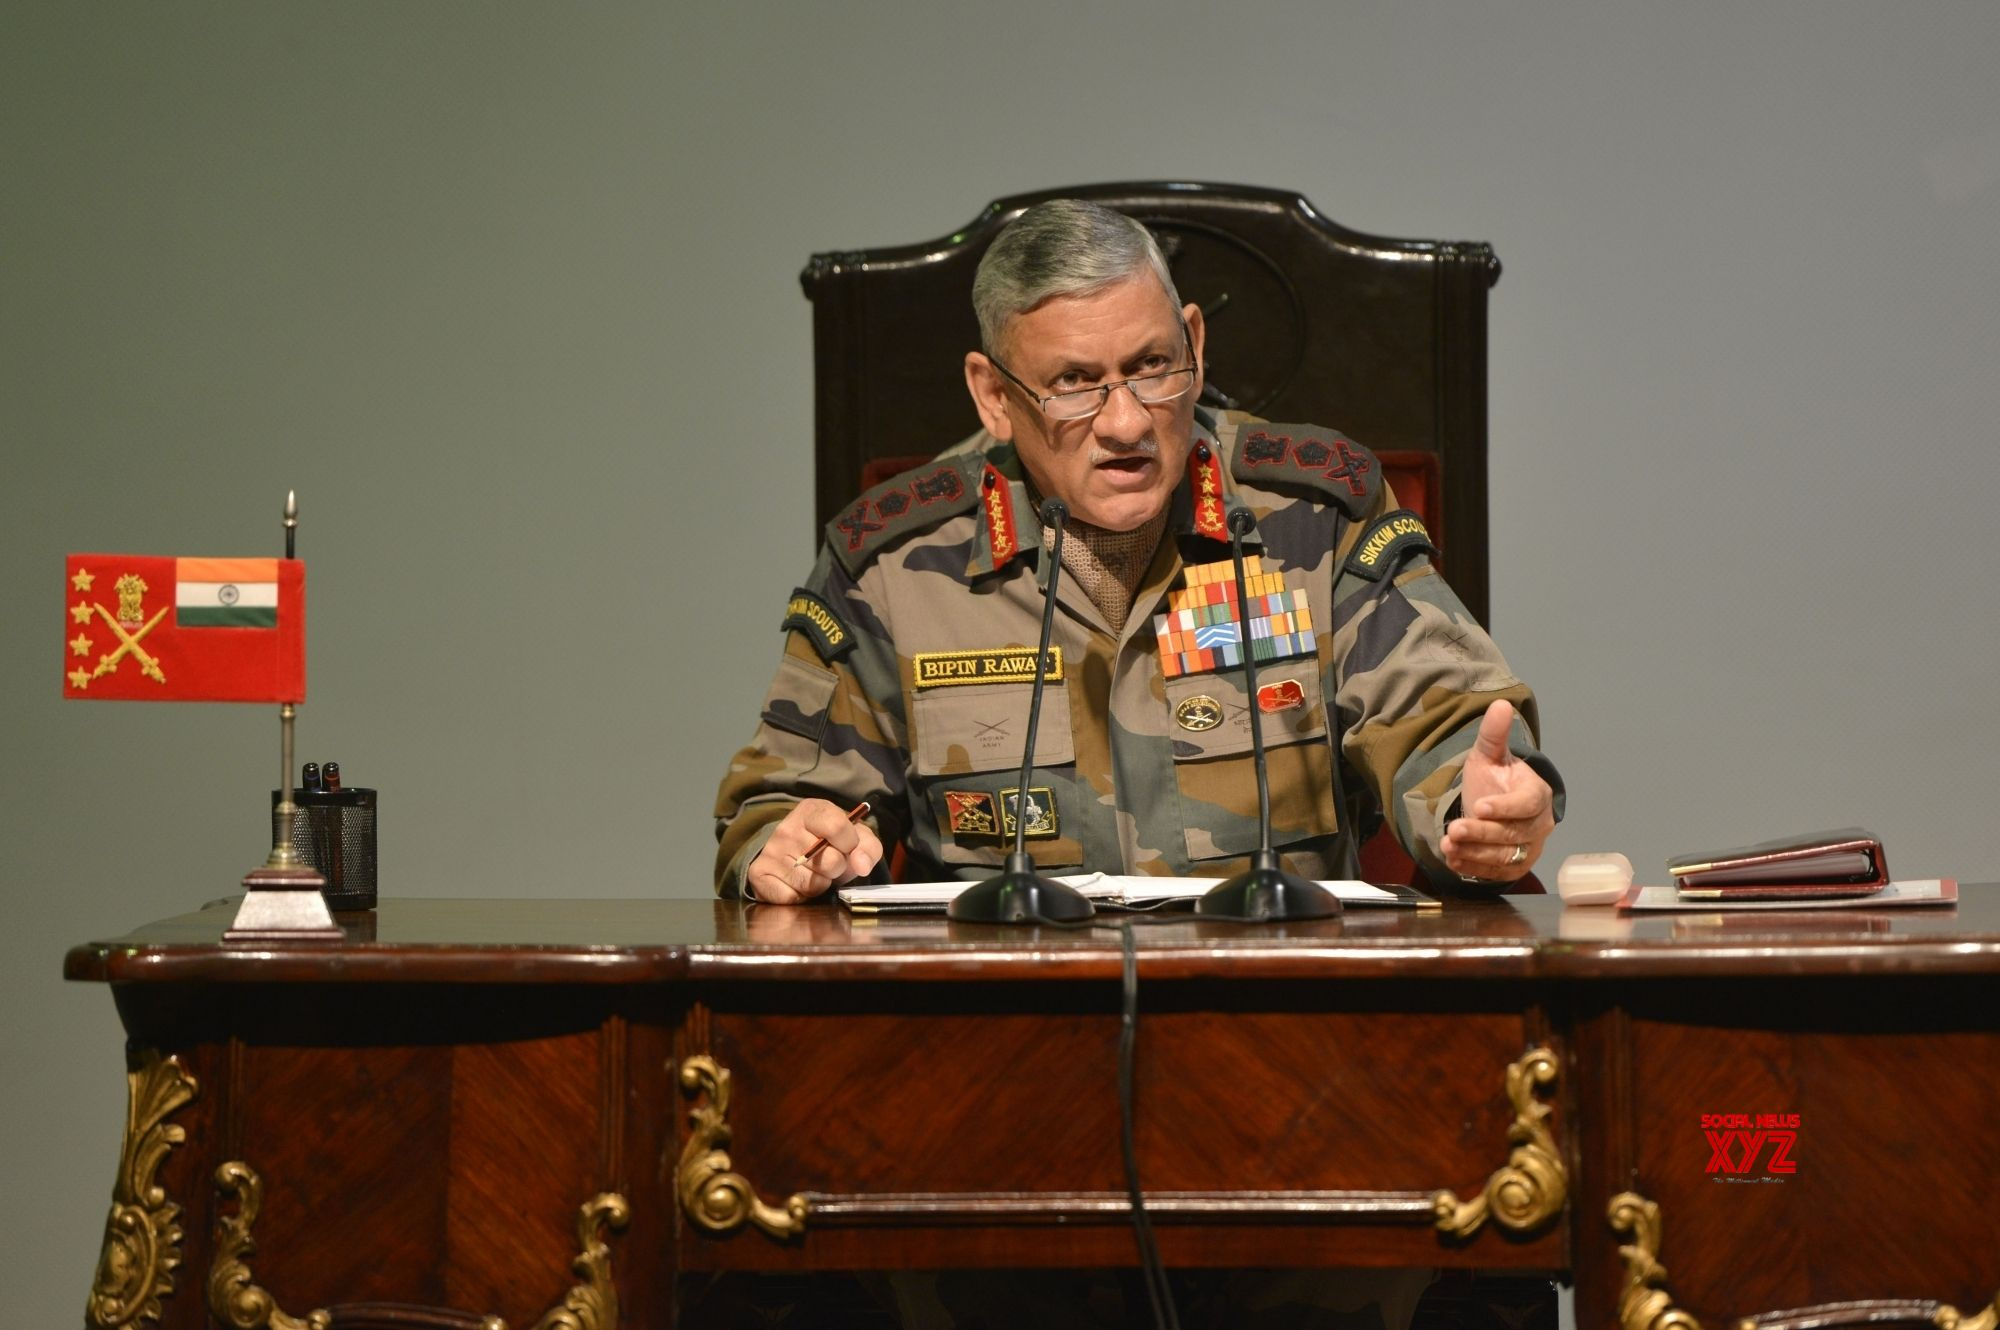 J&K education system needs overhaul: Army chief